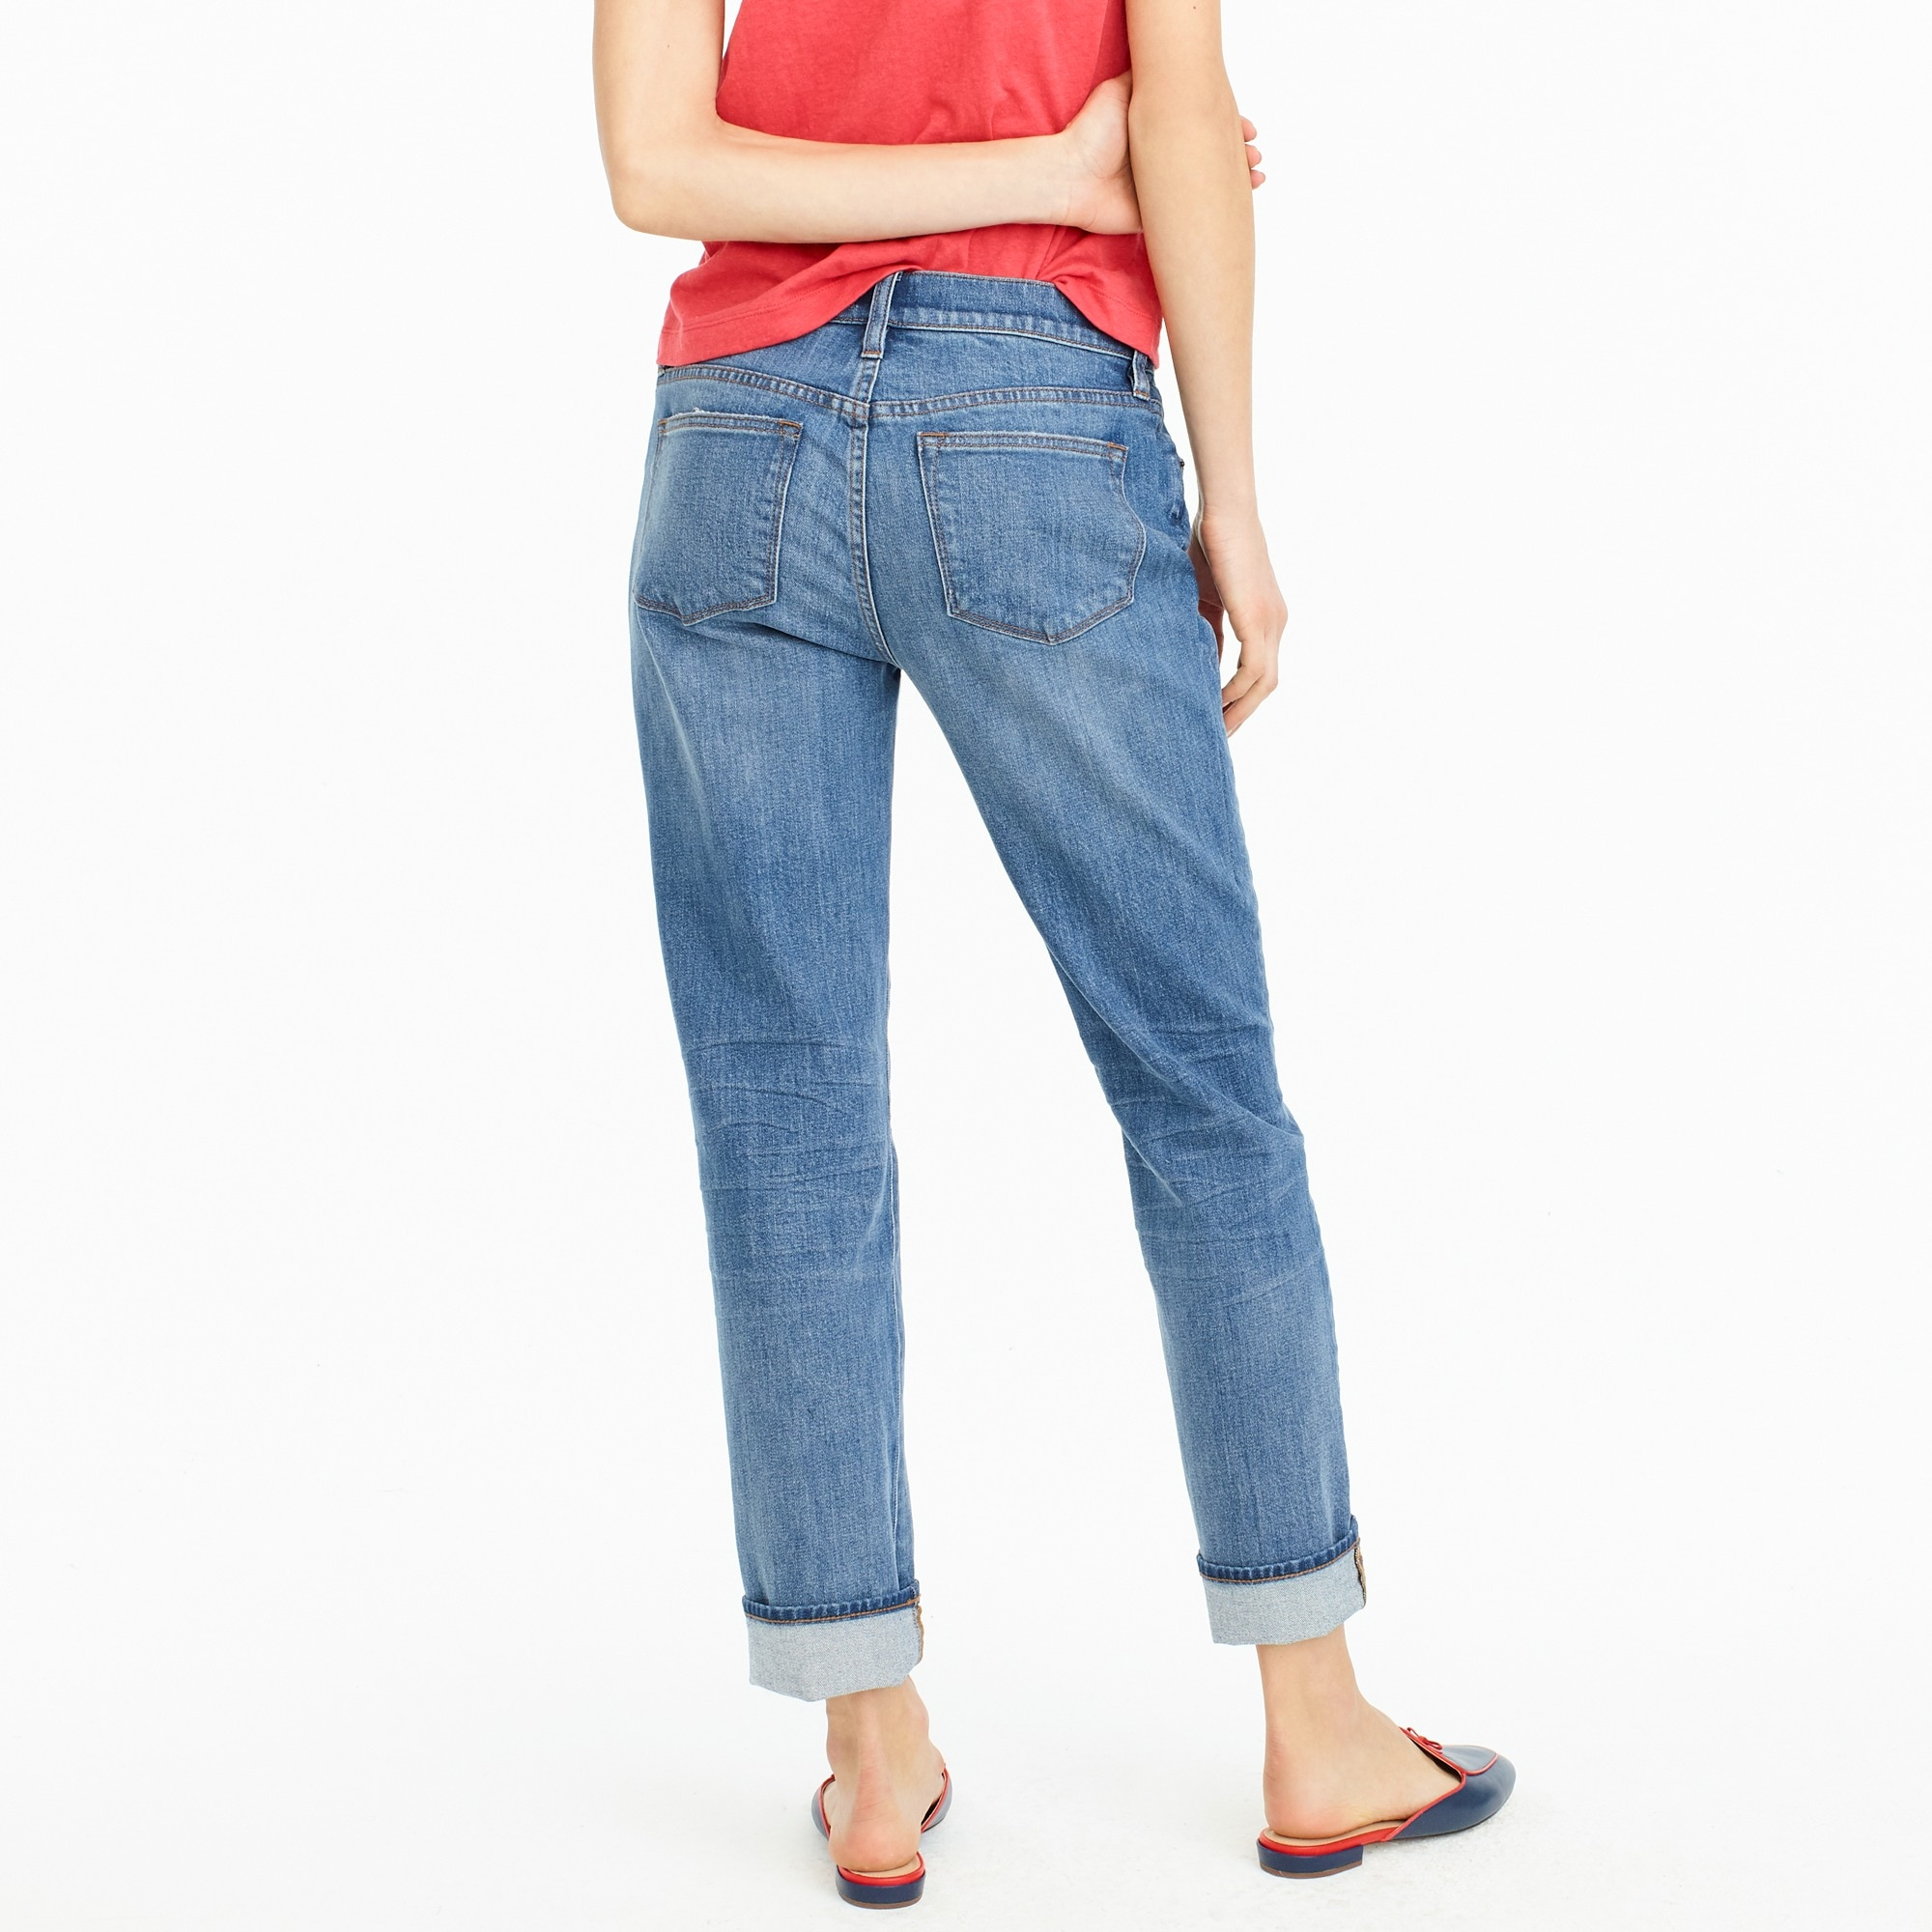 Petite slim boyfriend jean in Creston wash